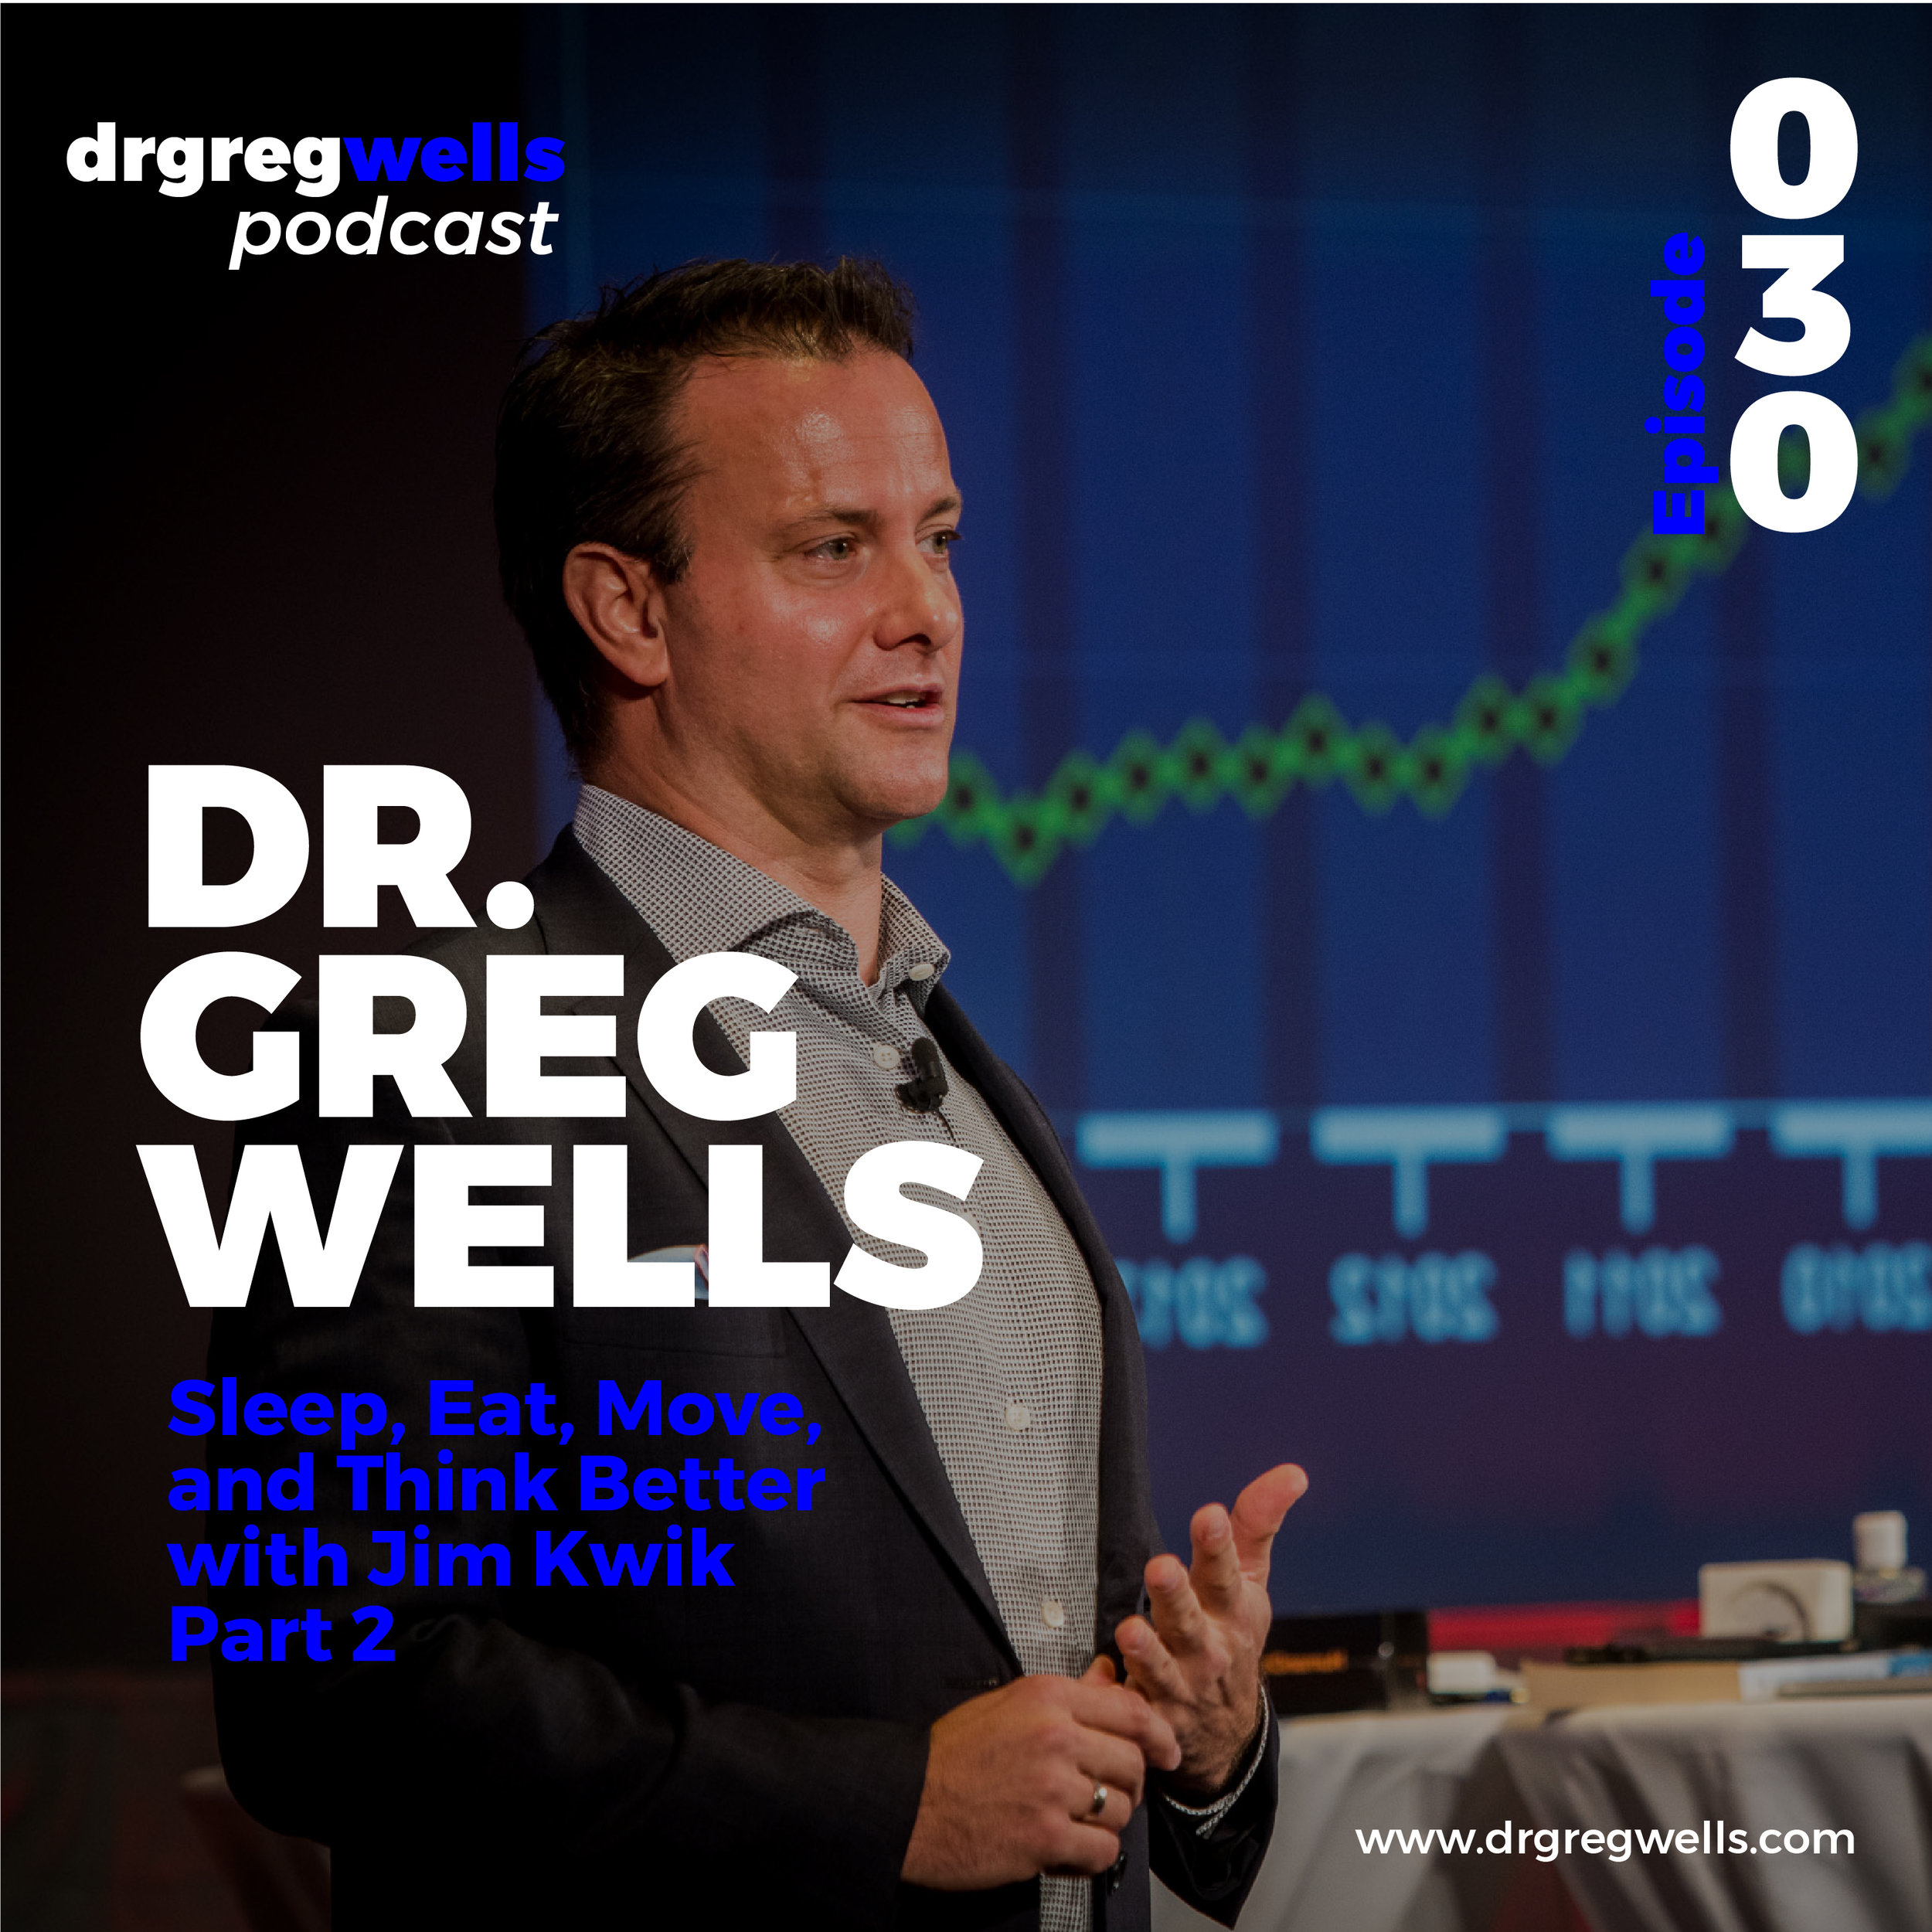 Dr Greg Wells Podcast Guest EP 1 - 32-30.jpg